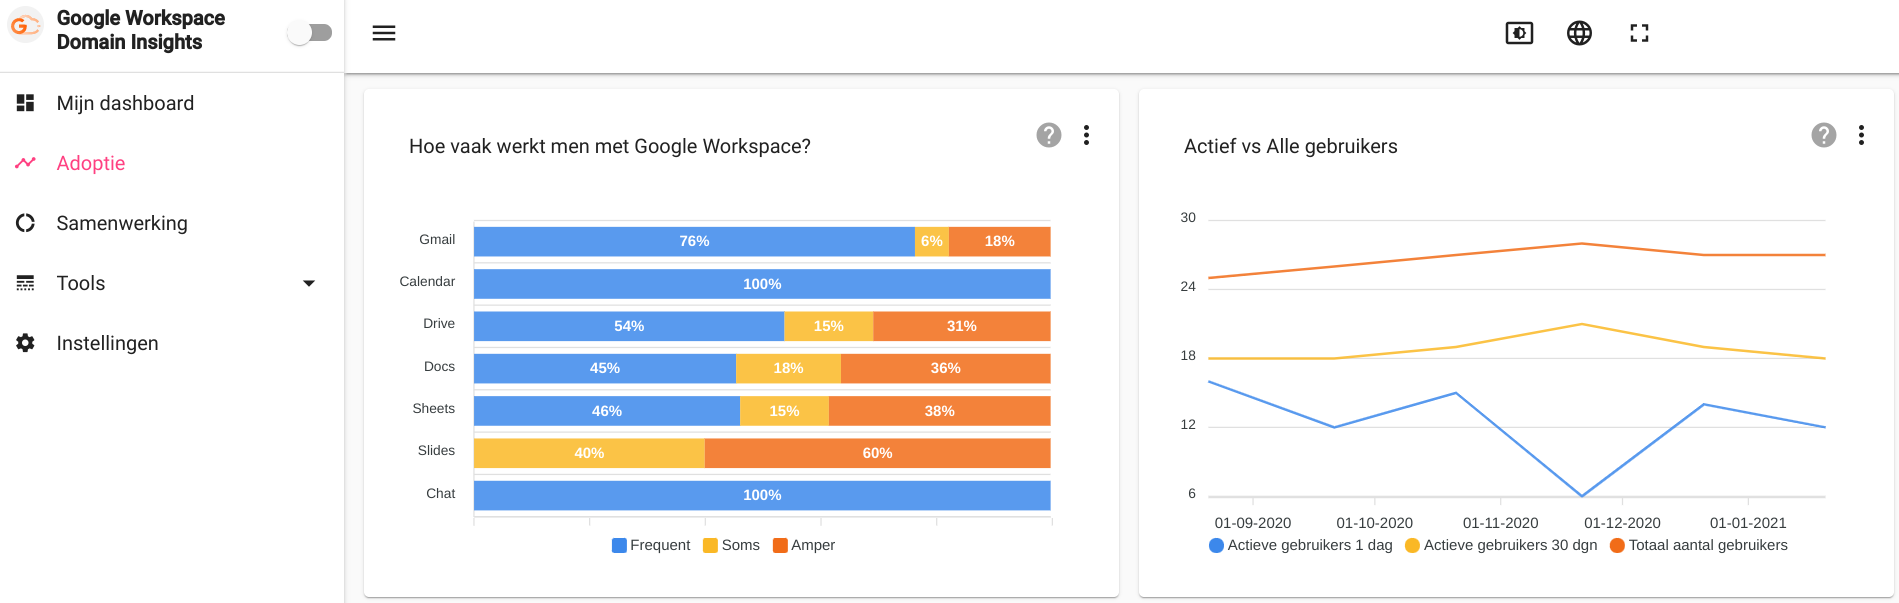 insights in adoption of the google workspace tooling